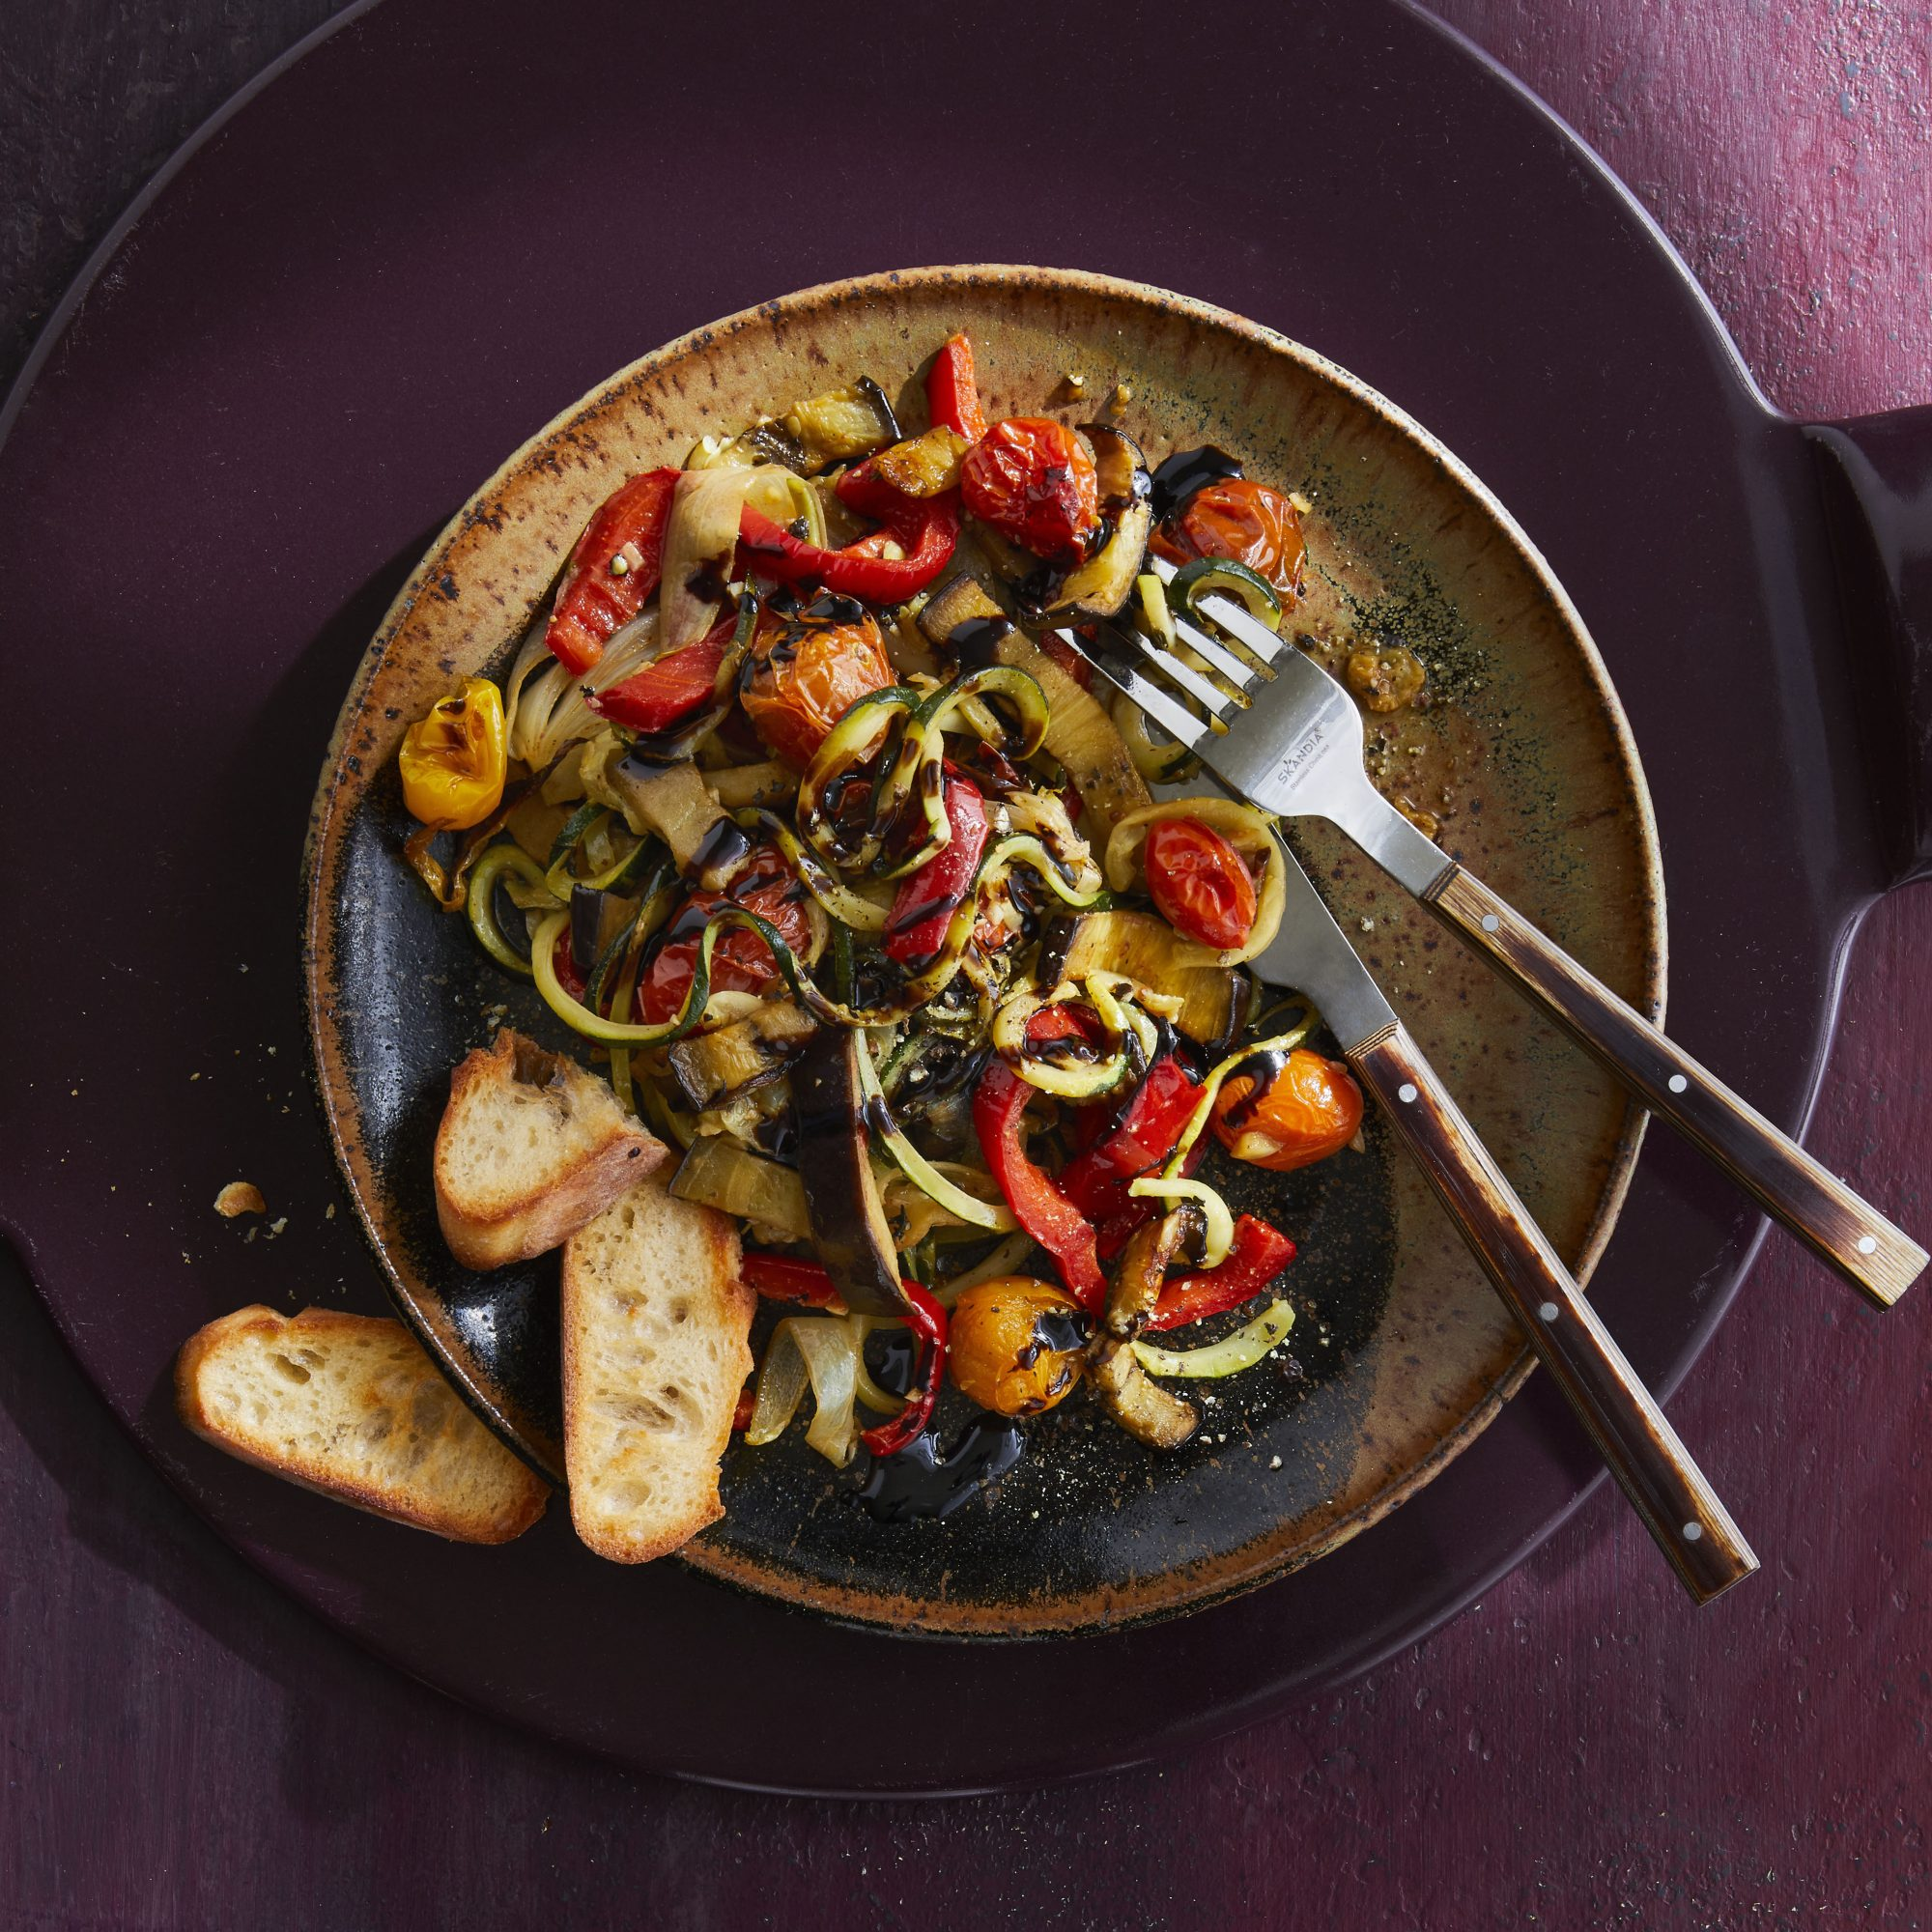 plate of ratatouille with a side of toasted bread